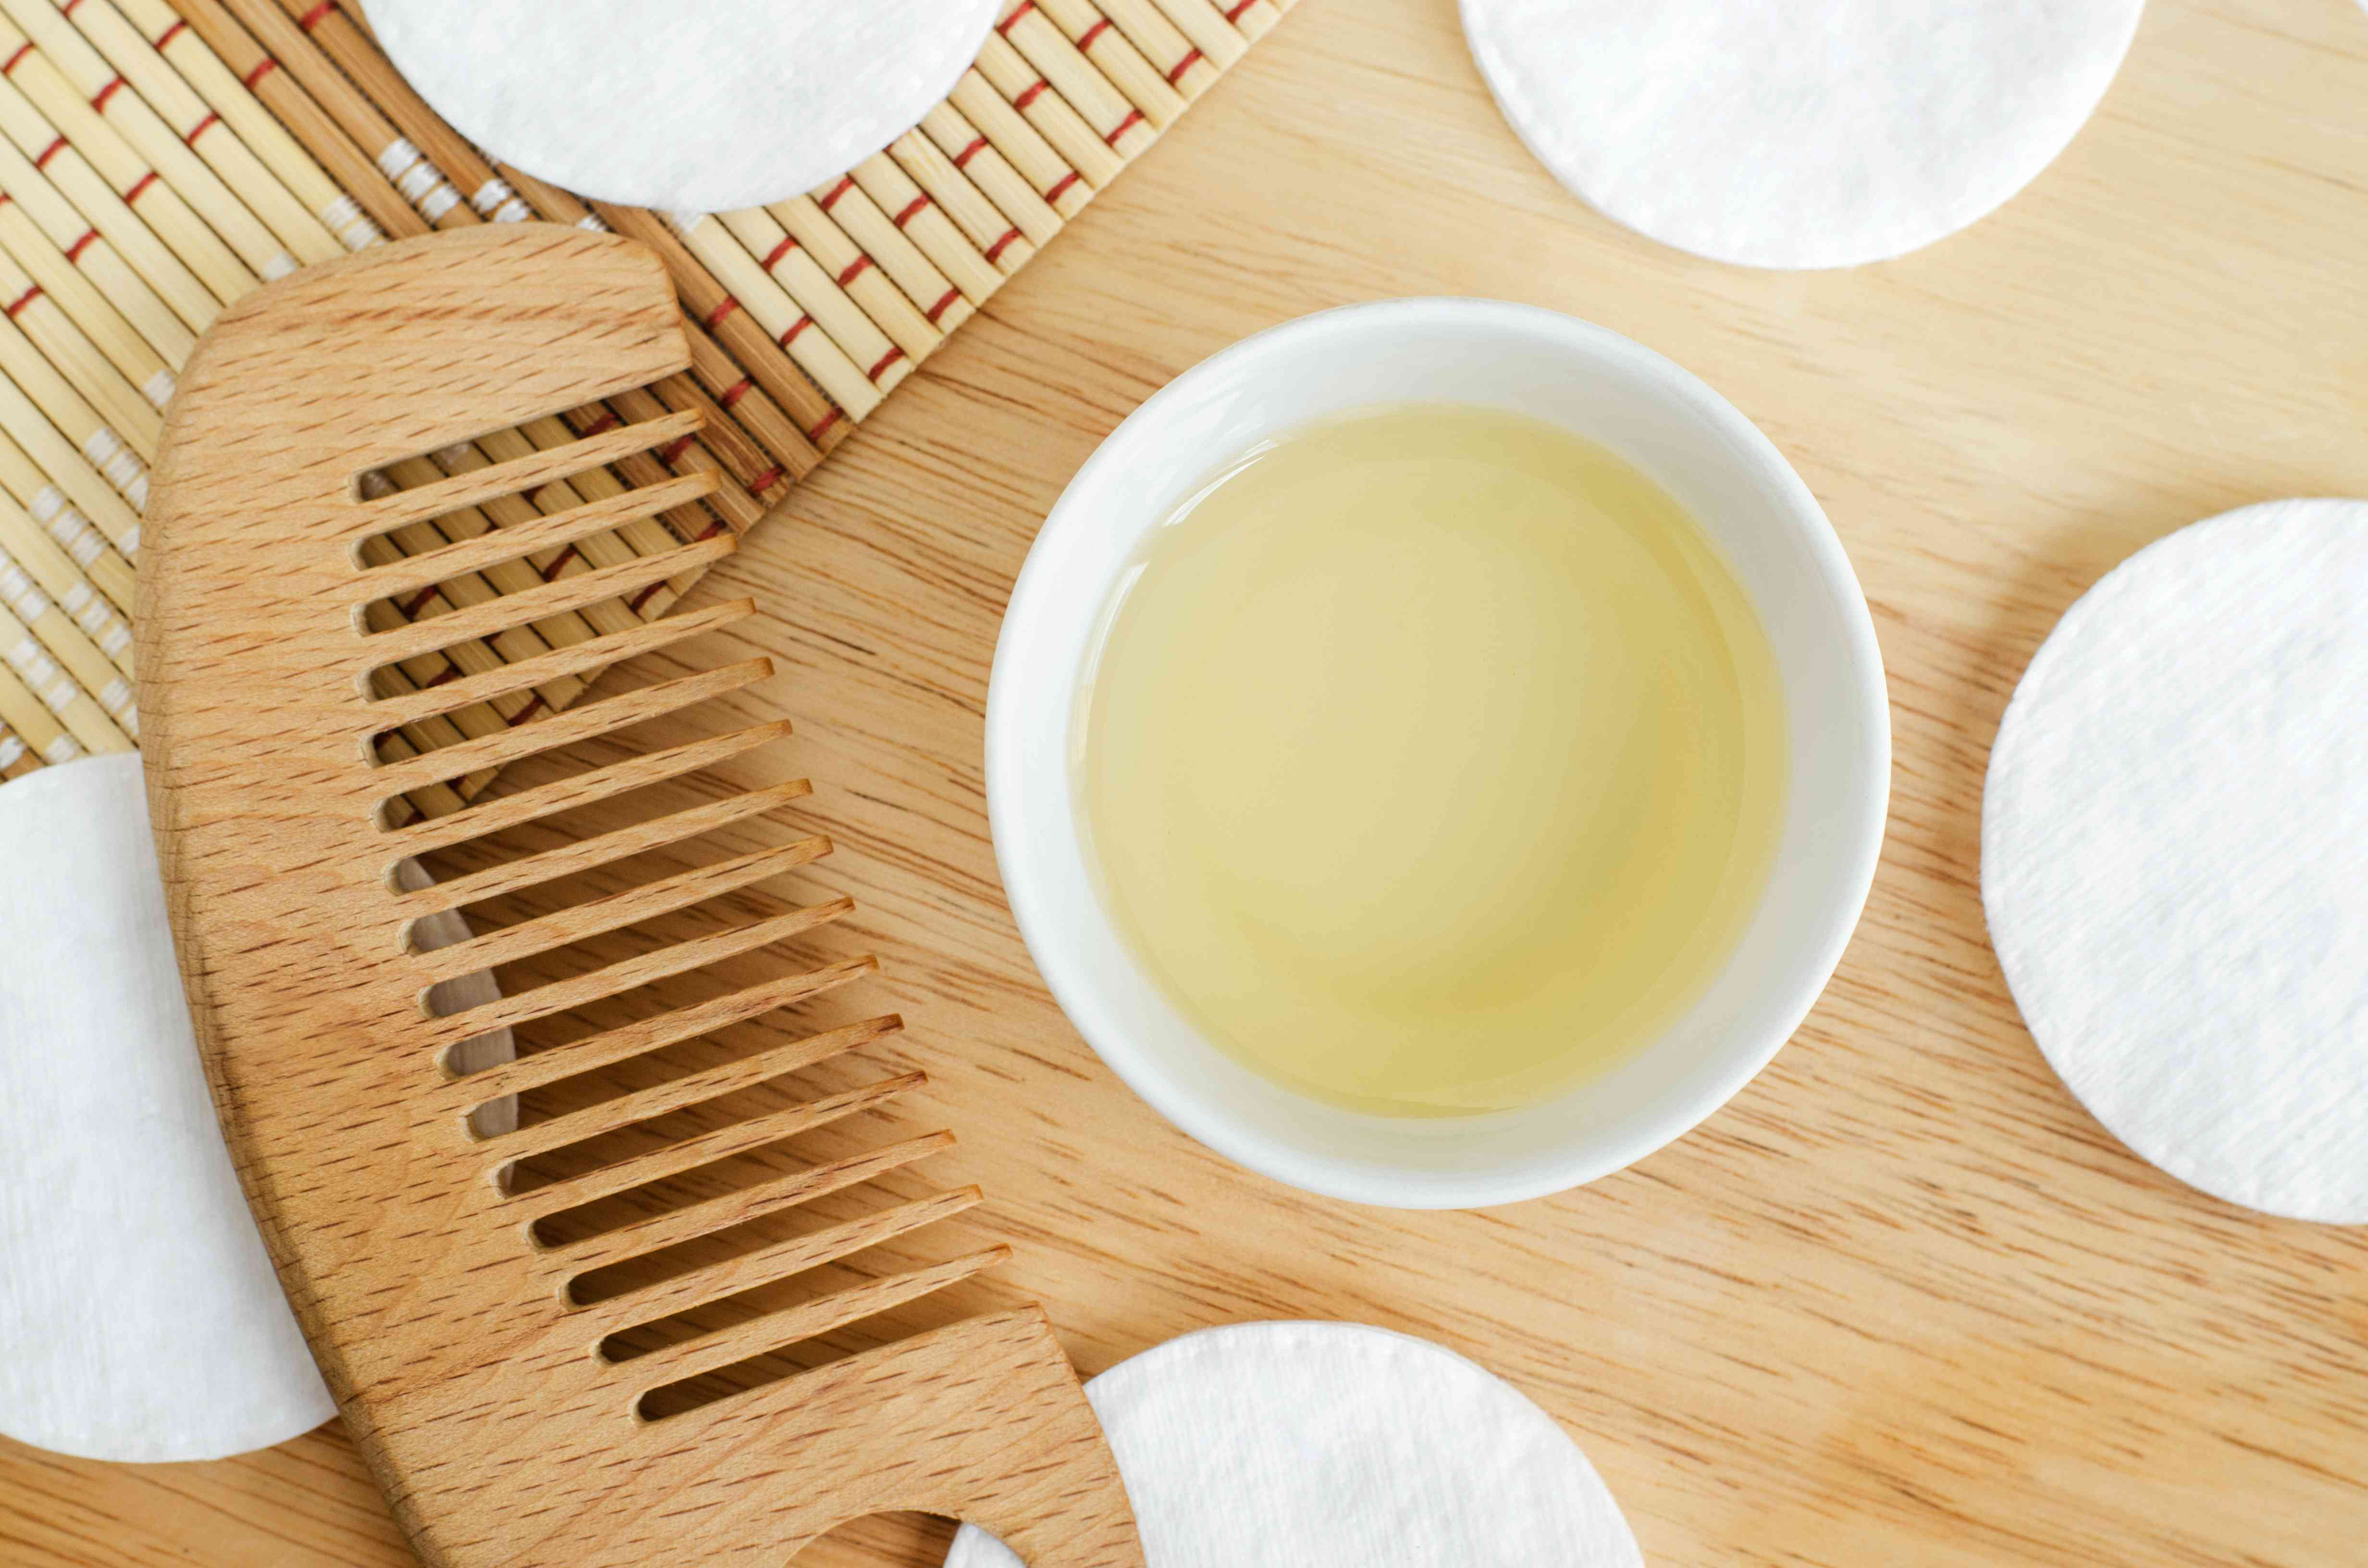 Olive oil, cotton pads and wooden hairbrush. Ingredients for preparing homemade hair mask. Natural beauty treatment recipe and zero waste concept. Top view, copy space.